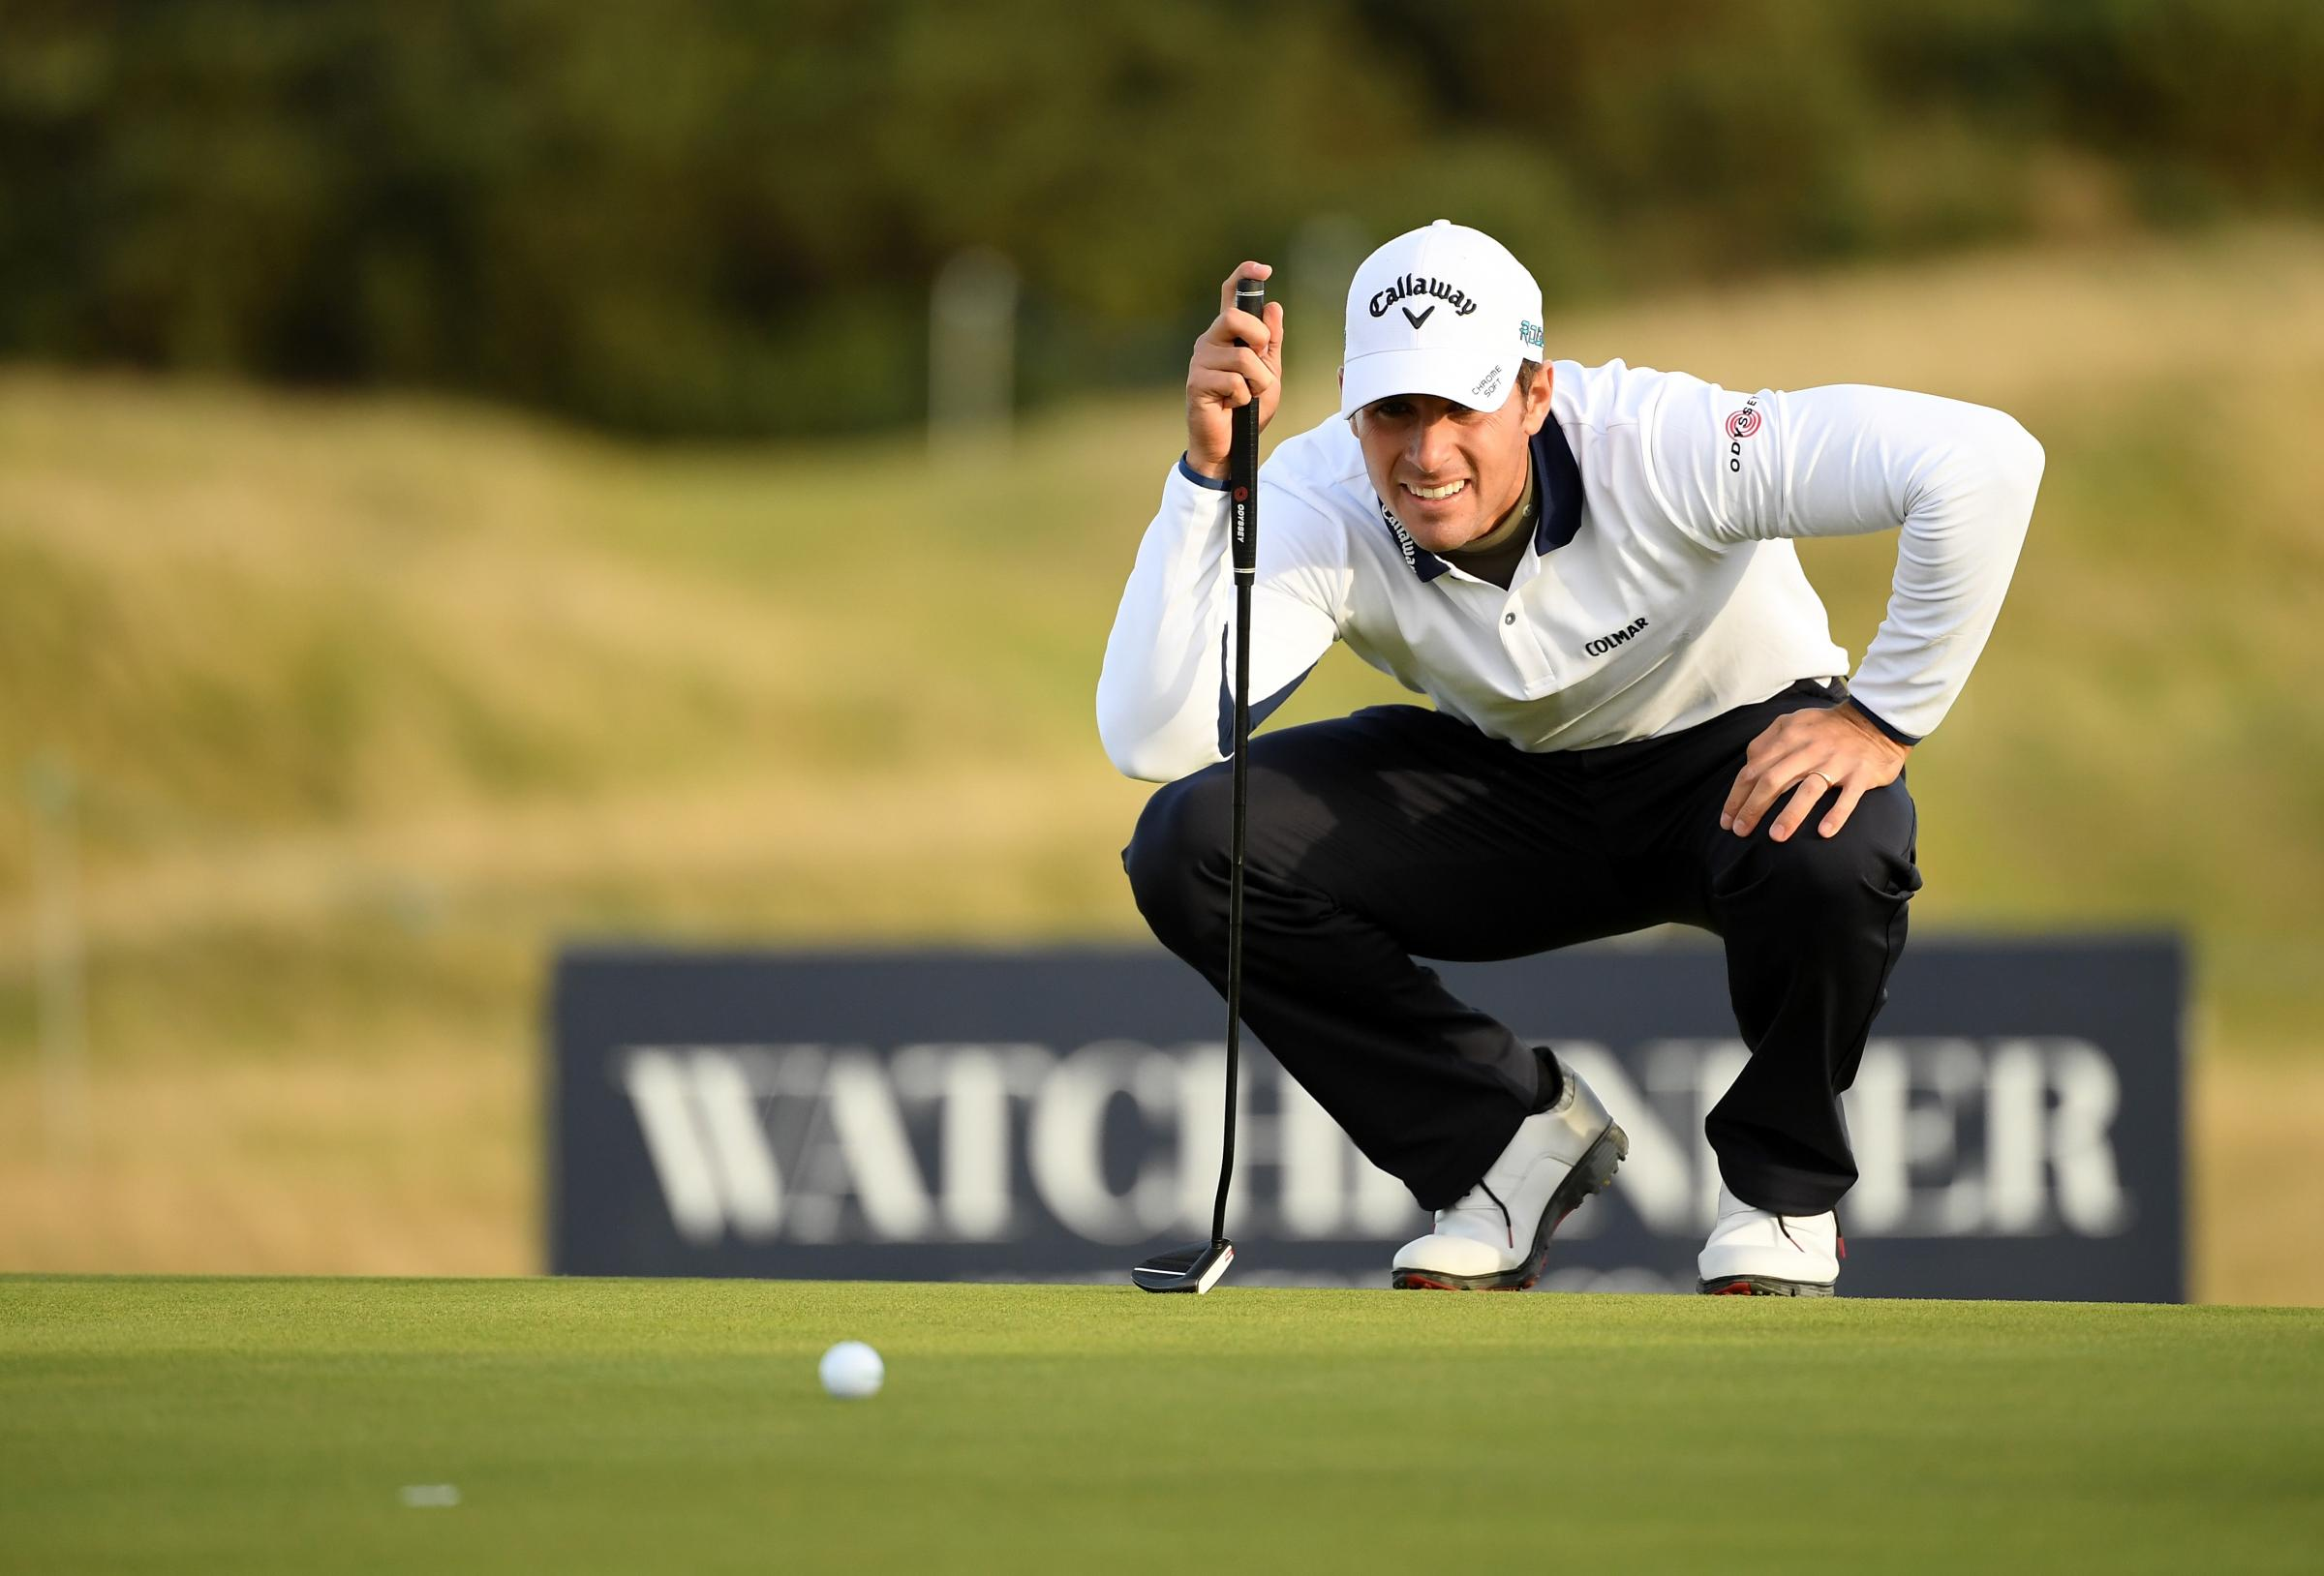 Italian job: Andrea Pavan shot a 63 on day two of the Dunhill Links (Picture: Getty)